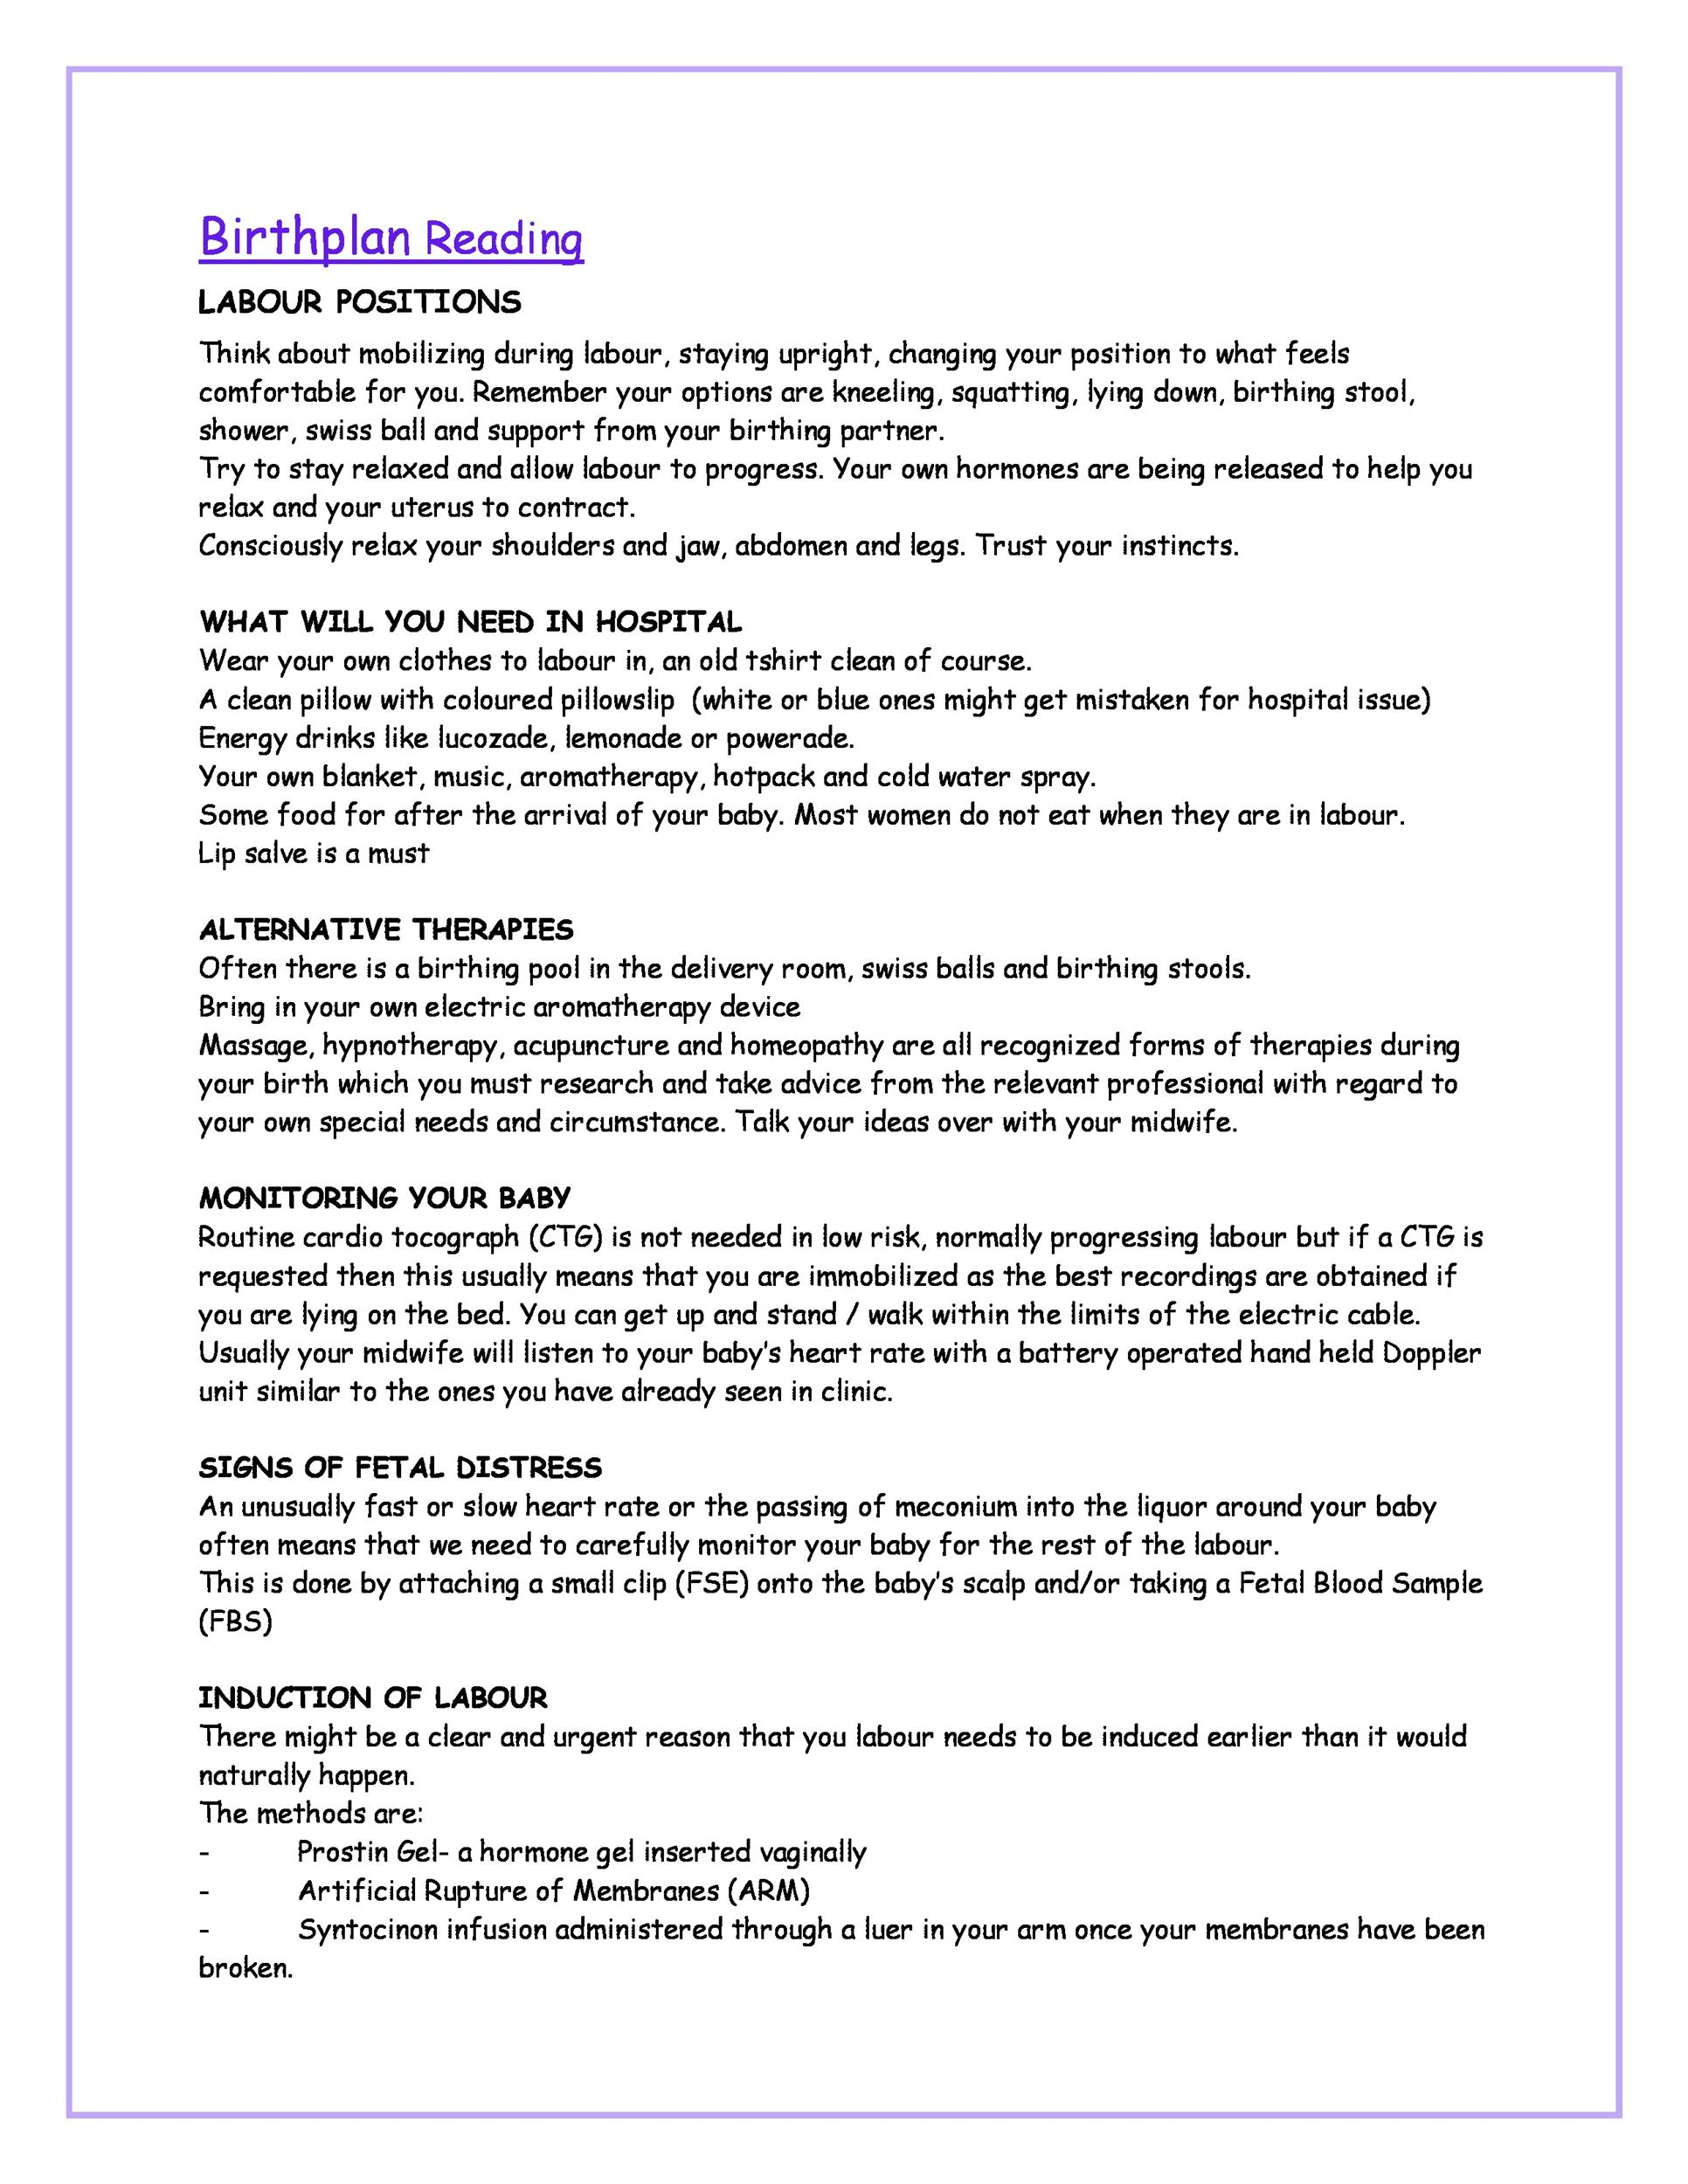 47+ Printable Birth Plan Templates Birth Plan Checklist ᐅ